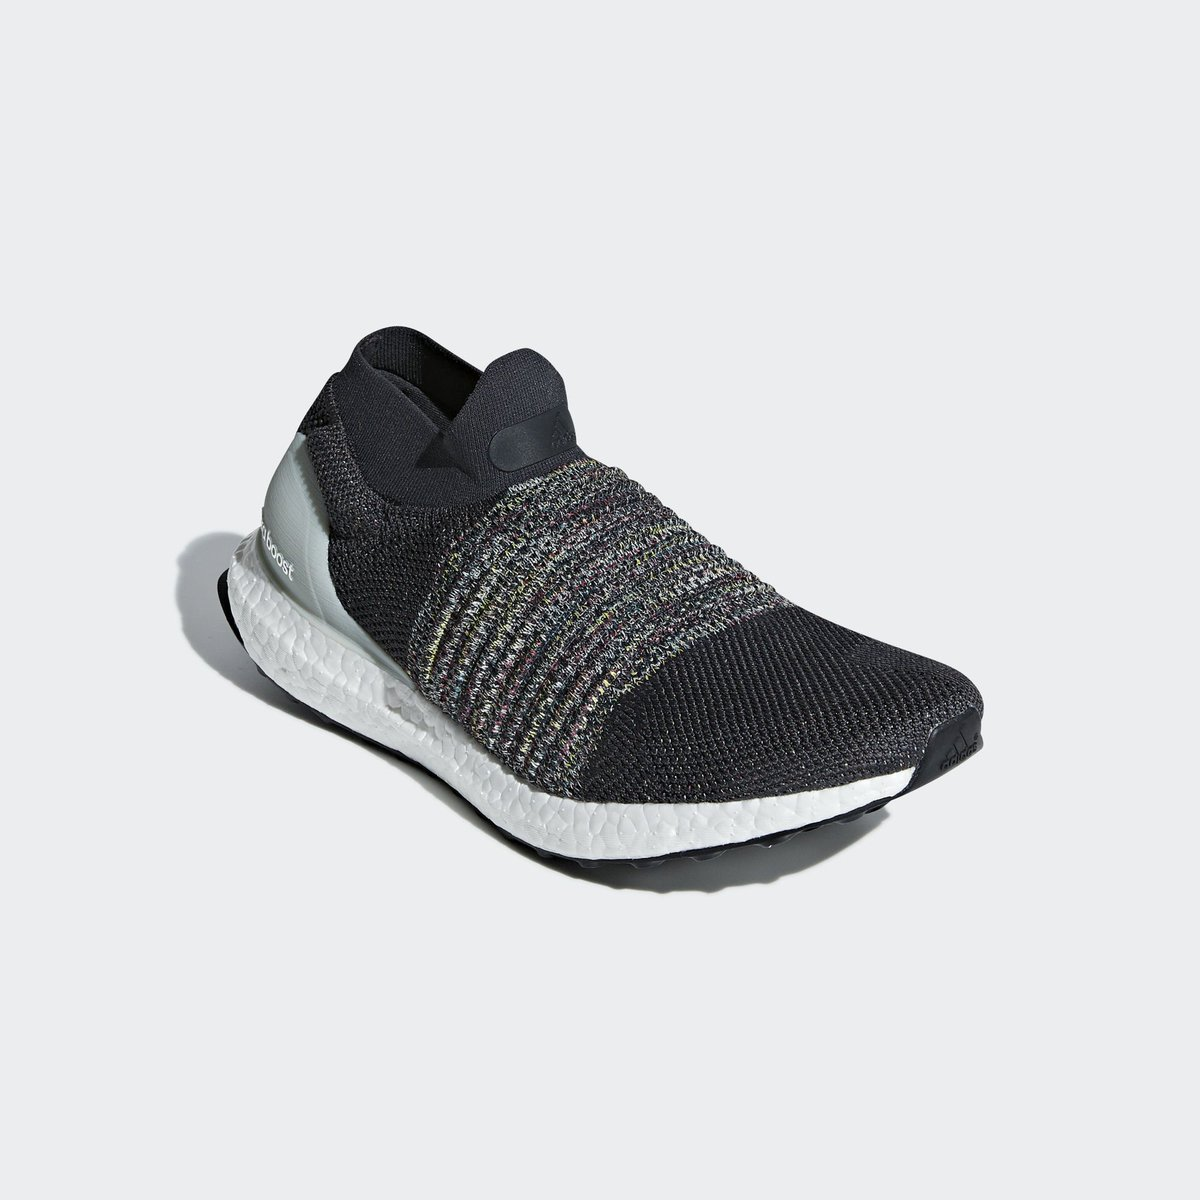 feac563935f Now available on  adidas US. adidas Ultra Boost Laceless Multicolor. —   http   bit.ly 2P1JltJ pic.twitter.com 3qfN8ne4Uj